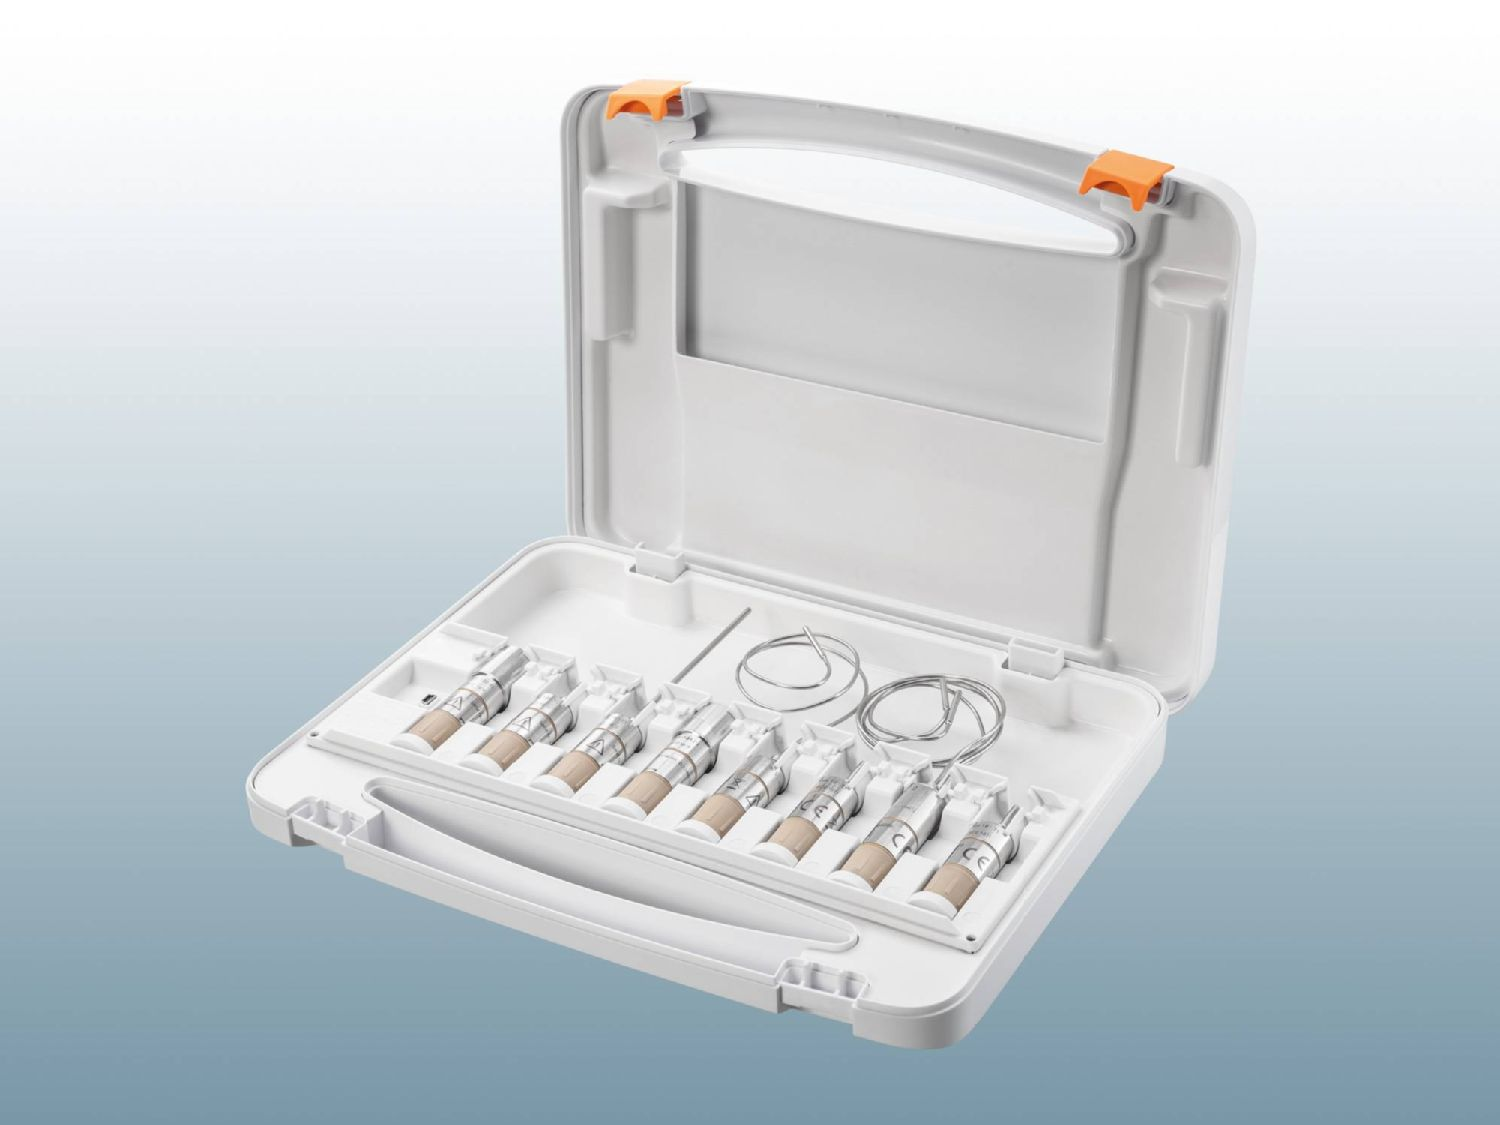 The testo 191 multifunction case